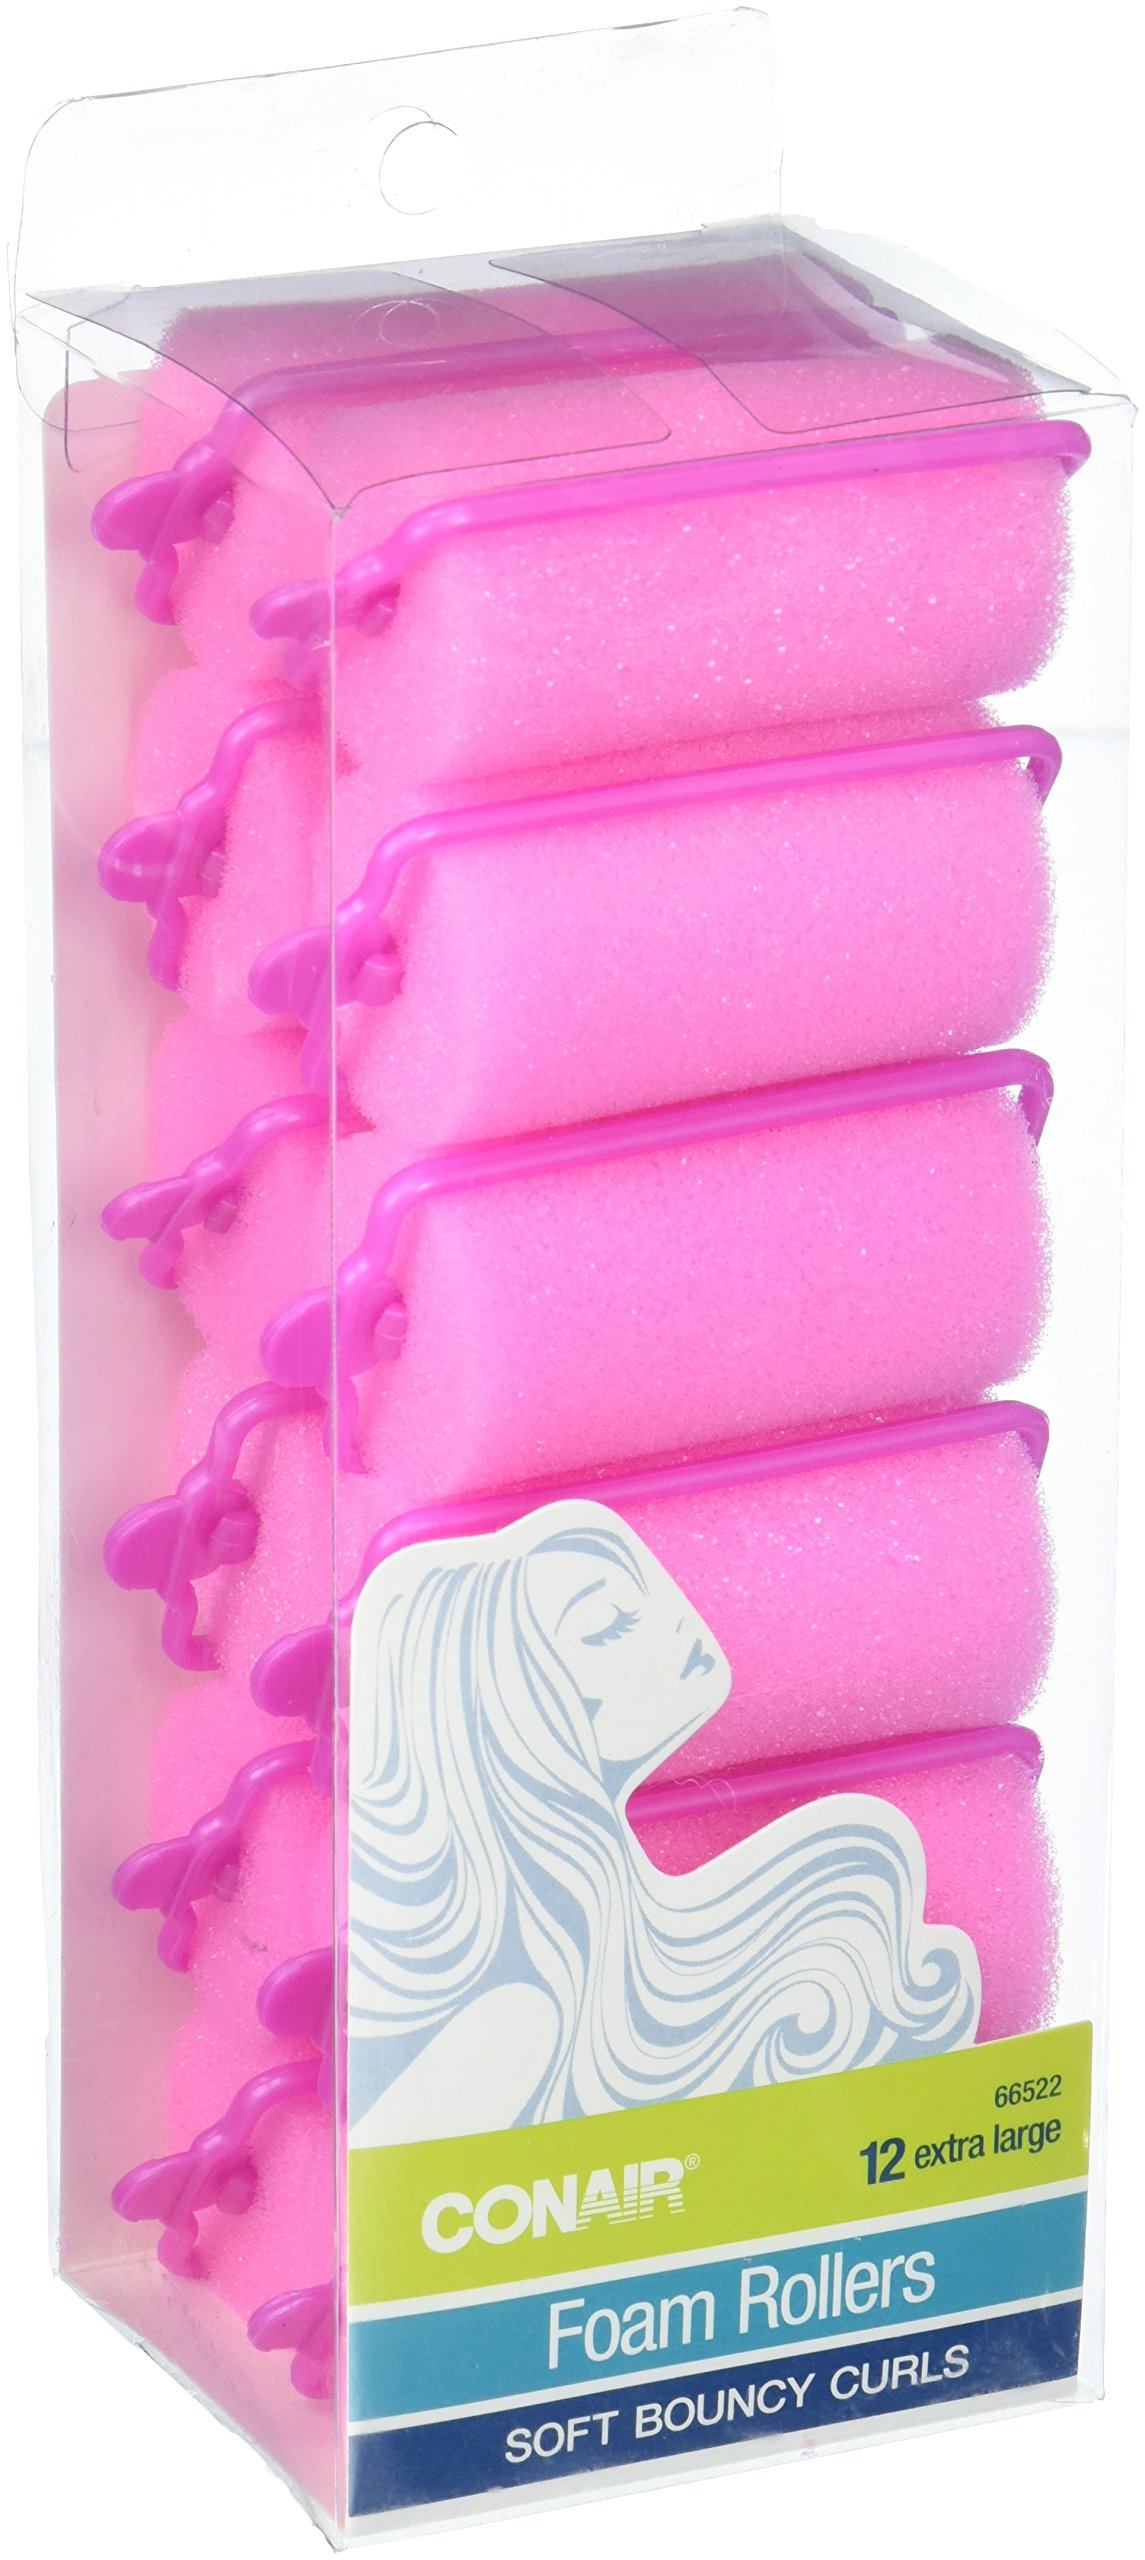 Conair Body and Bounce Extra Large Foam Rollers, 12 Count